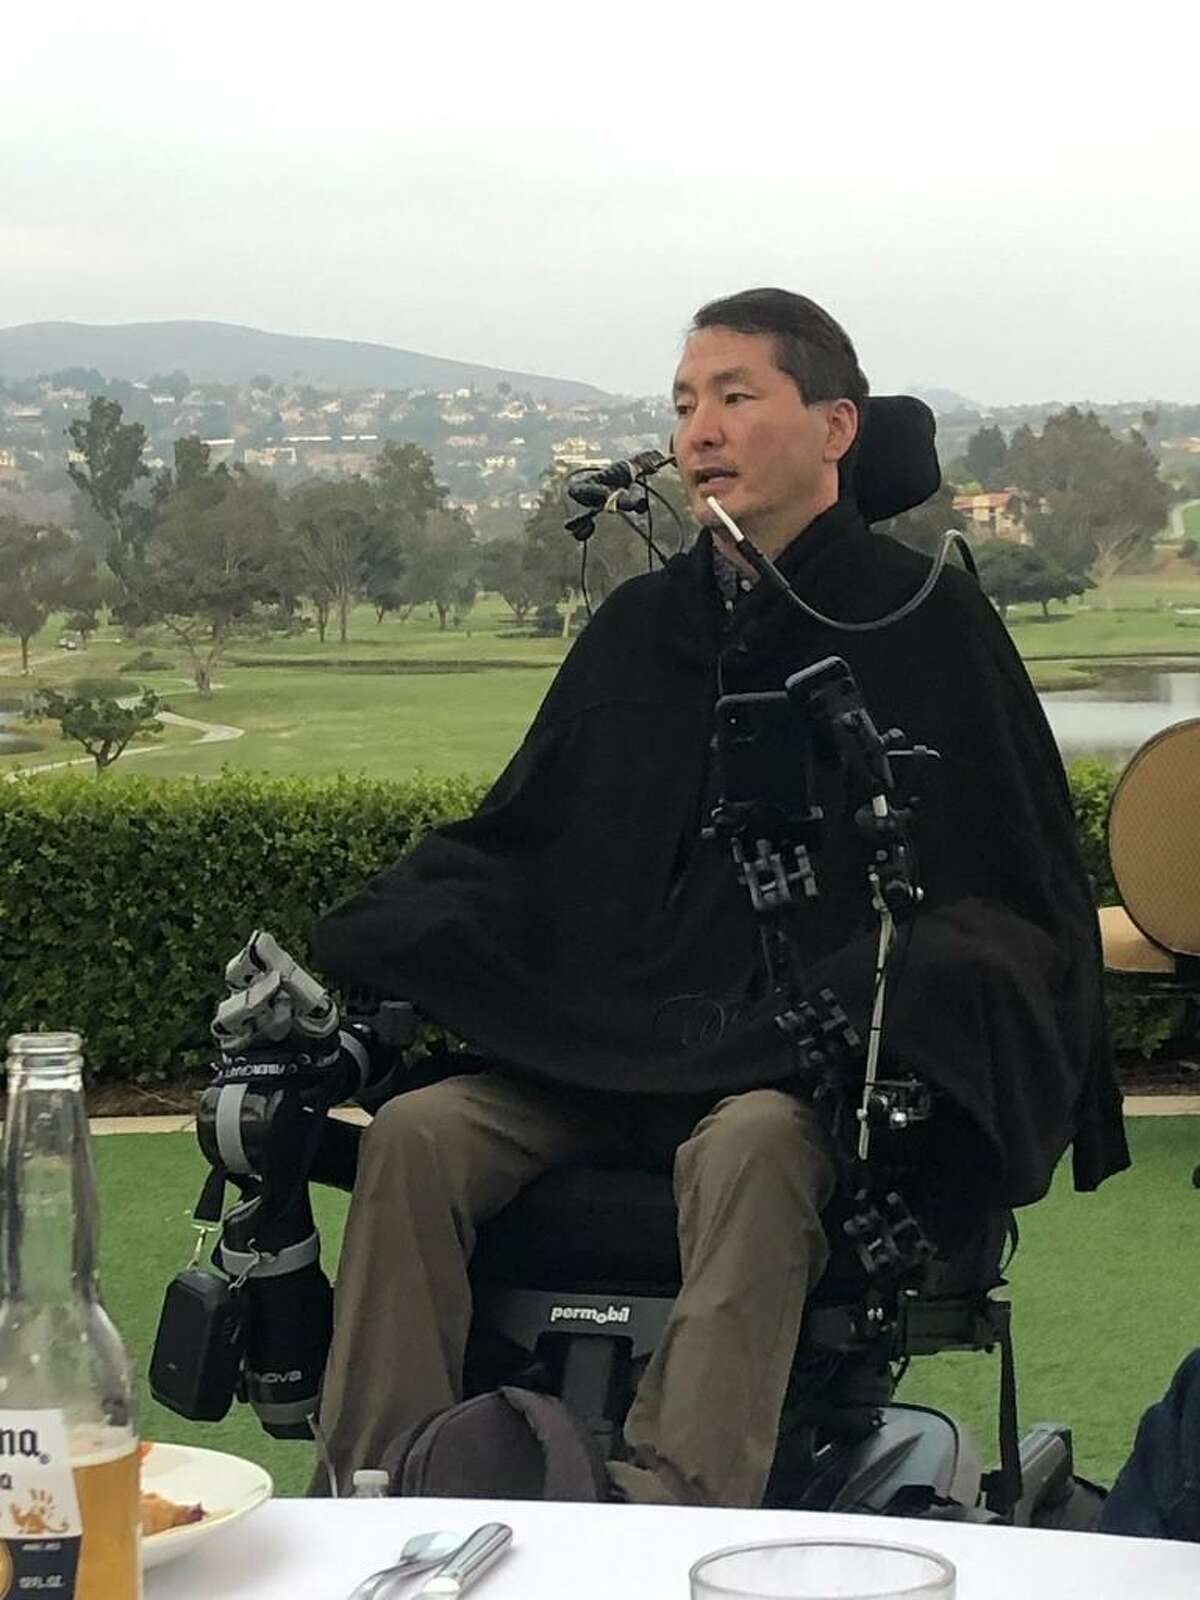 Dr. Rex Marco, who was paralyzed in 2019, will return to Memorial Park to fundraise for spinal cord research